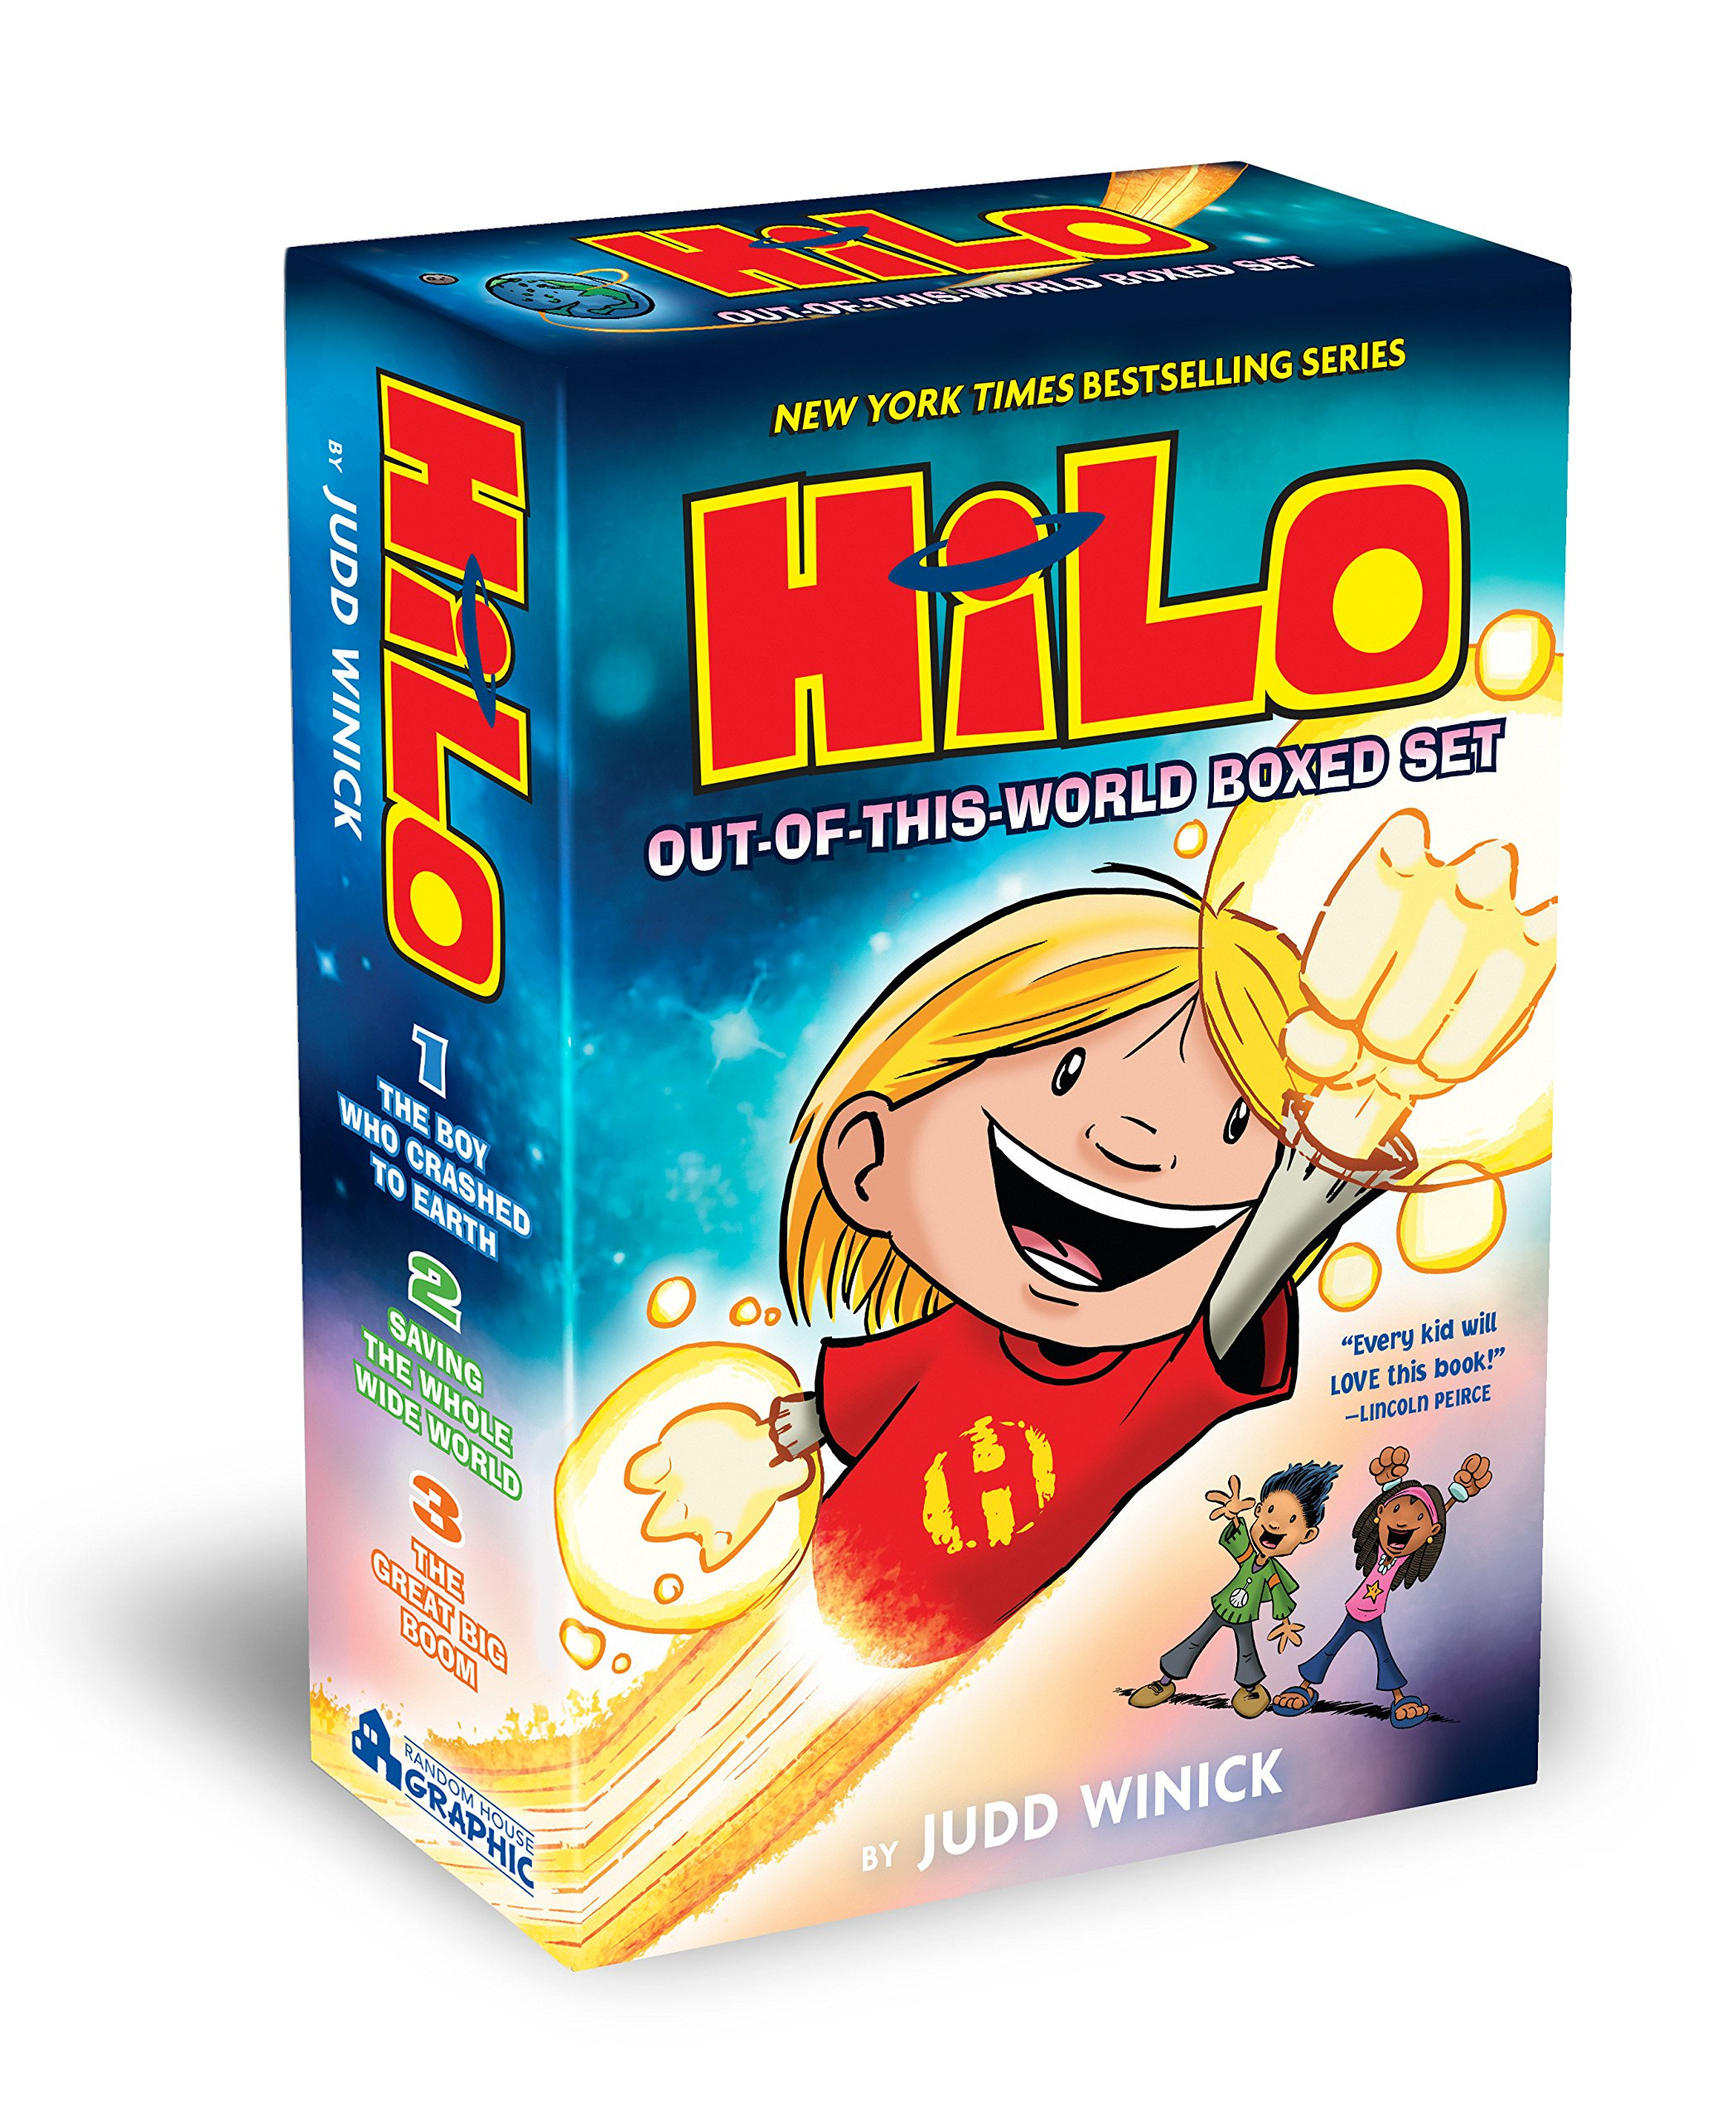 Hilo: Out-of-This-World Boxed Set by Random House Books for Young Readers